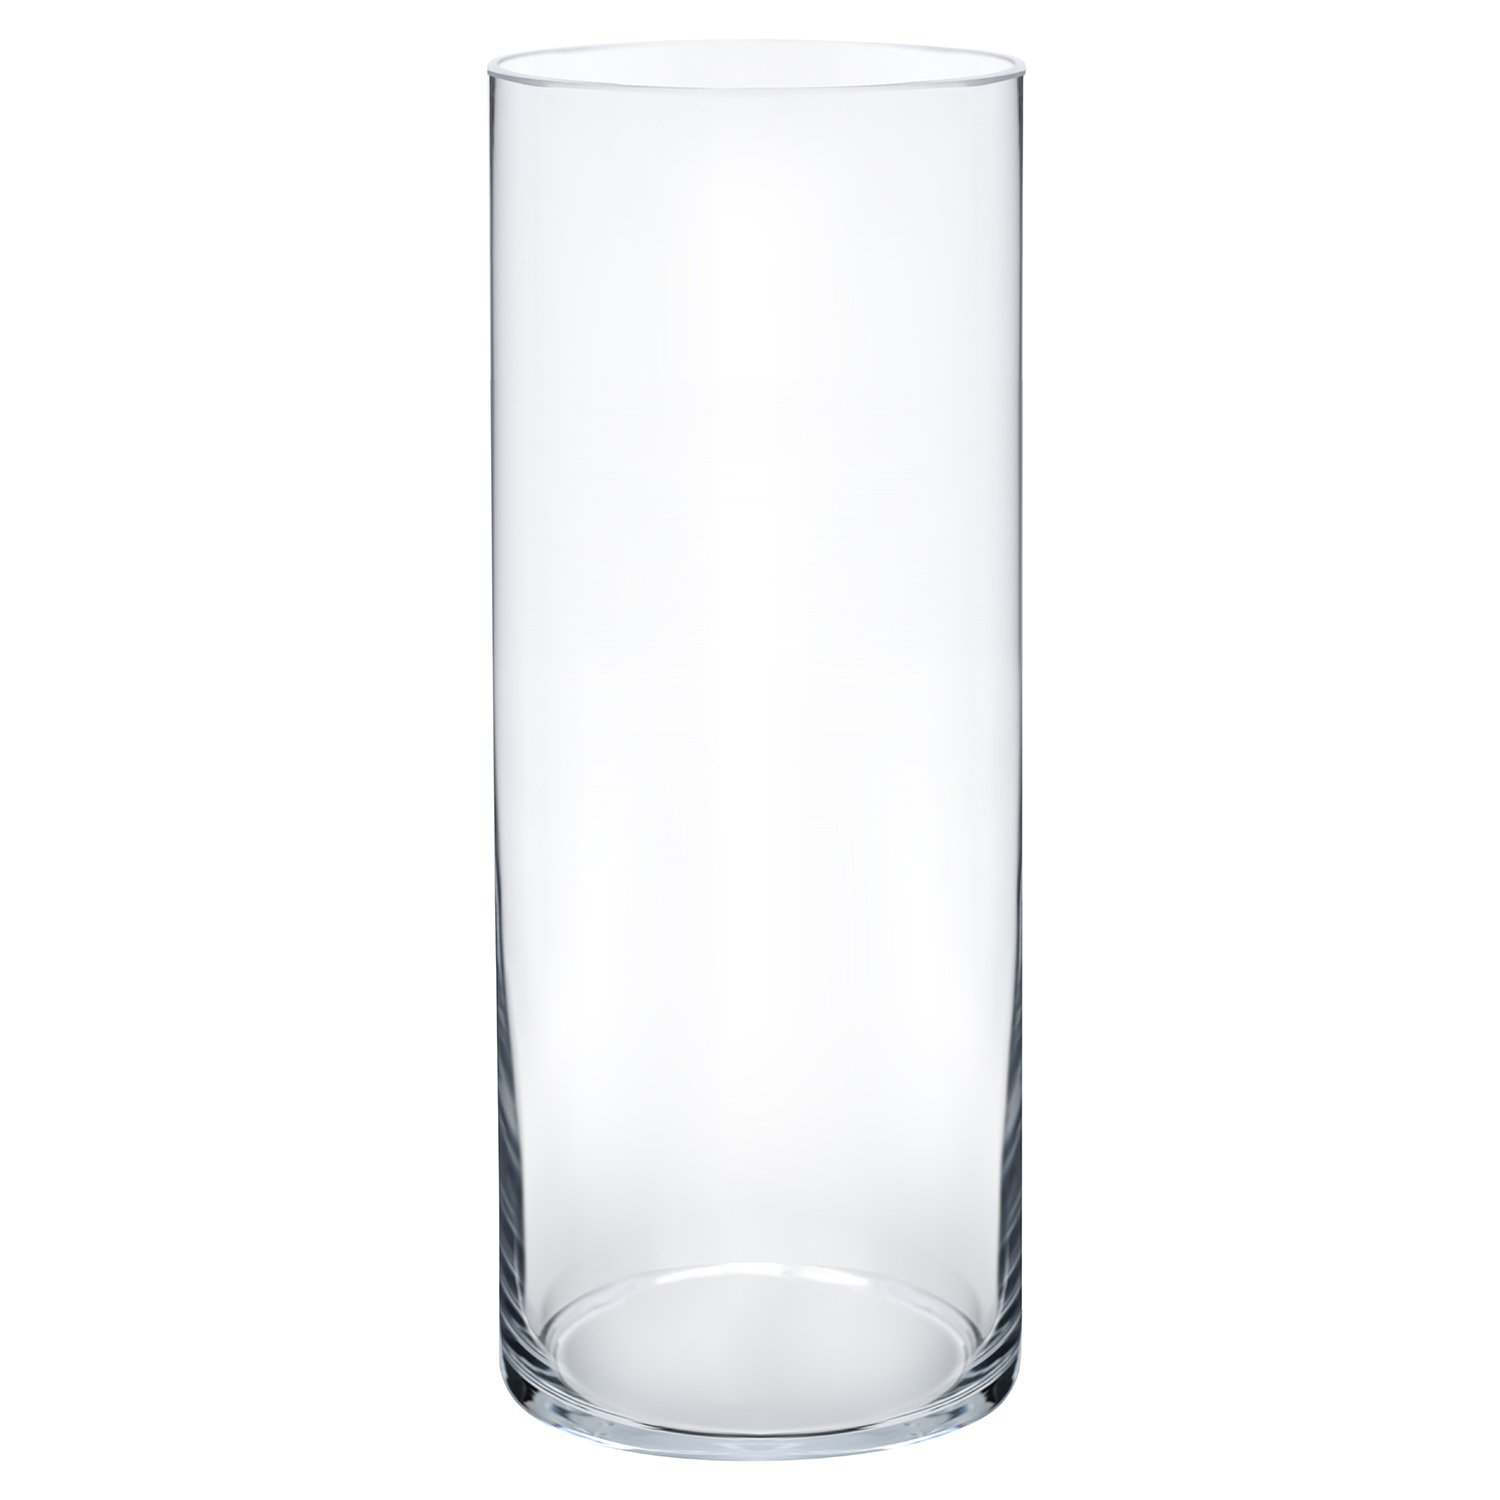 Amazon flower glass vase decorative centerpiece for home or amazon flower glass vase decorative centerpiece for home or wedding by royal imports cylinder shape 4 tall 4 opening clear home kitchen reviewsmspy